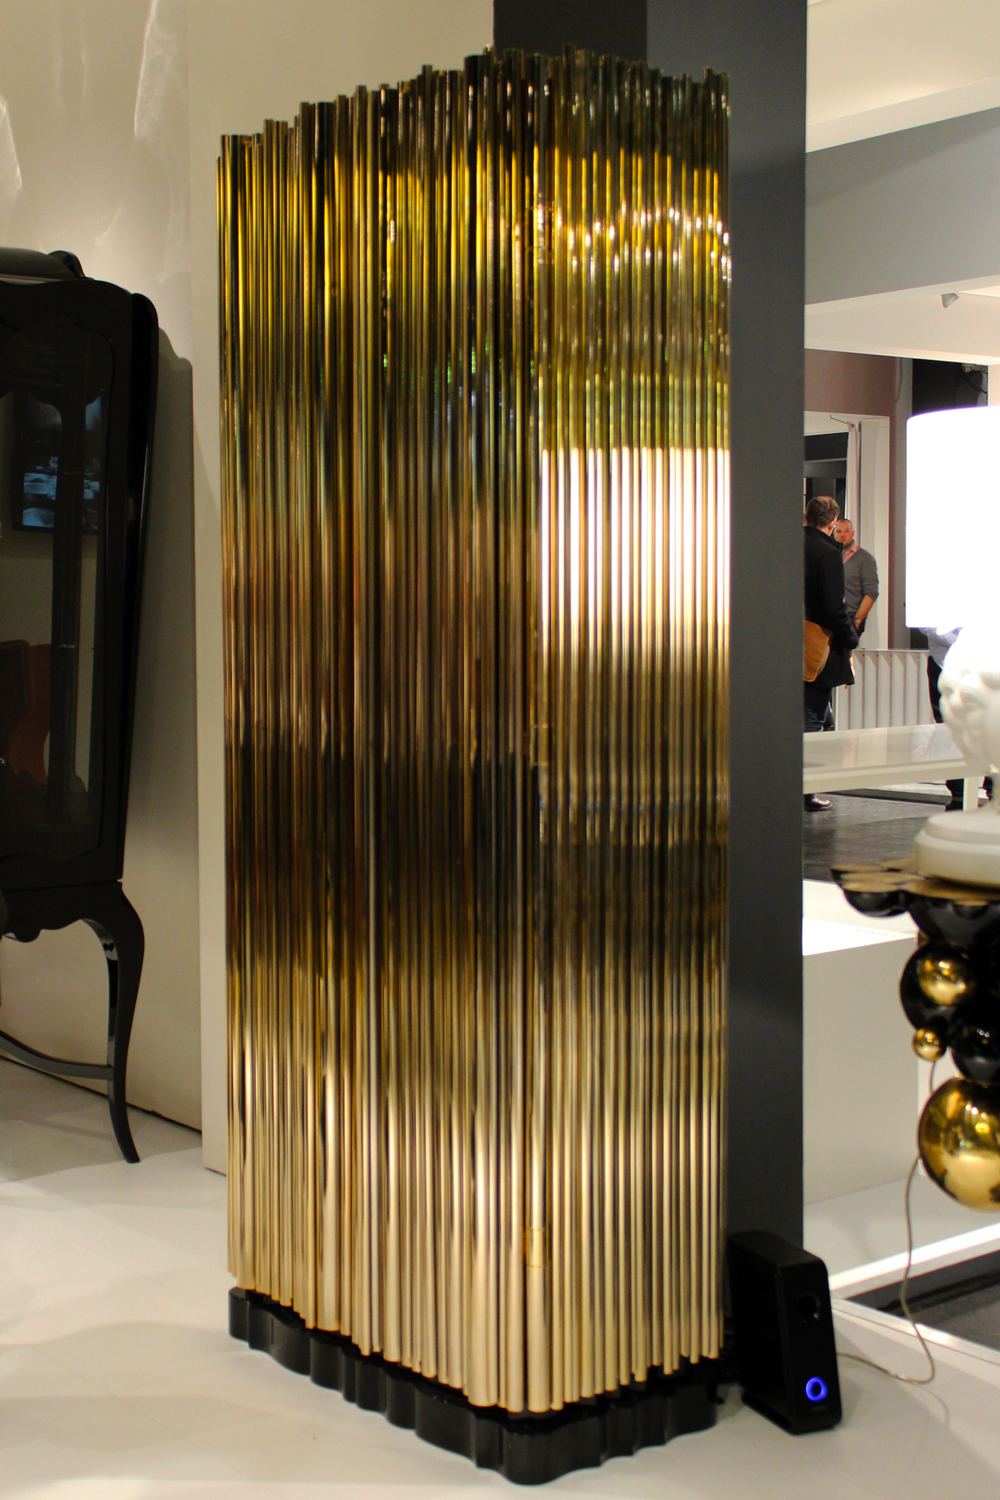 5-pieces-that-you-really-have-to-see-in-hpmkt-2015 (13) 5 Pieces that you really have to see in HPMKT 2015 5 Pieces that you really have to see in HPMKT 2015 5 pieces that you really have to see in hpmkt 2015 13